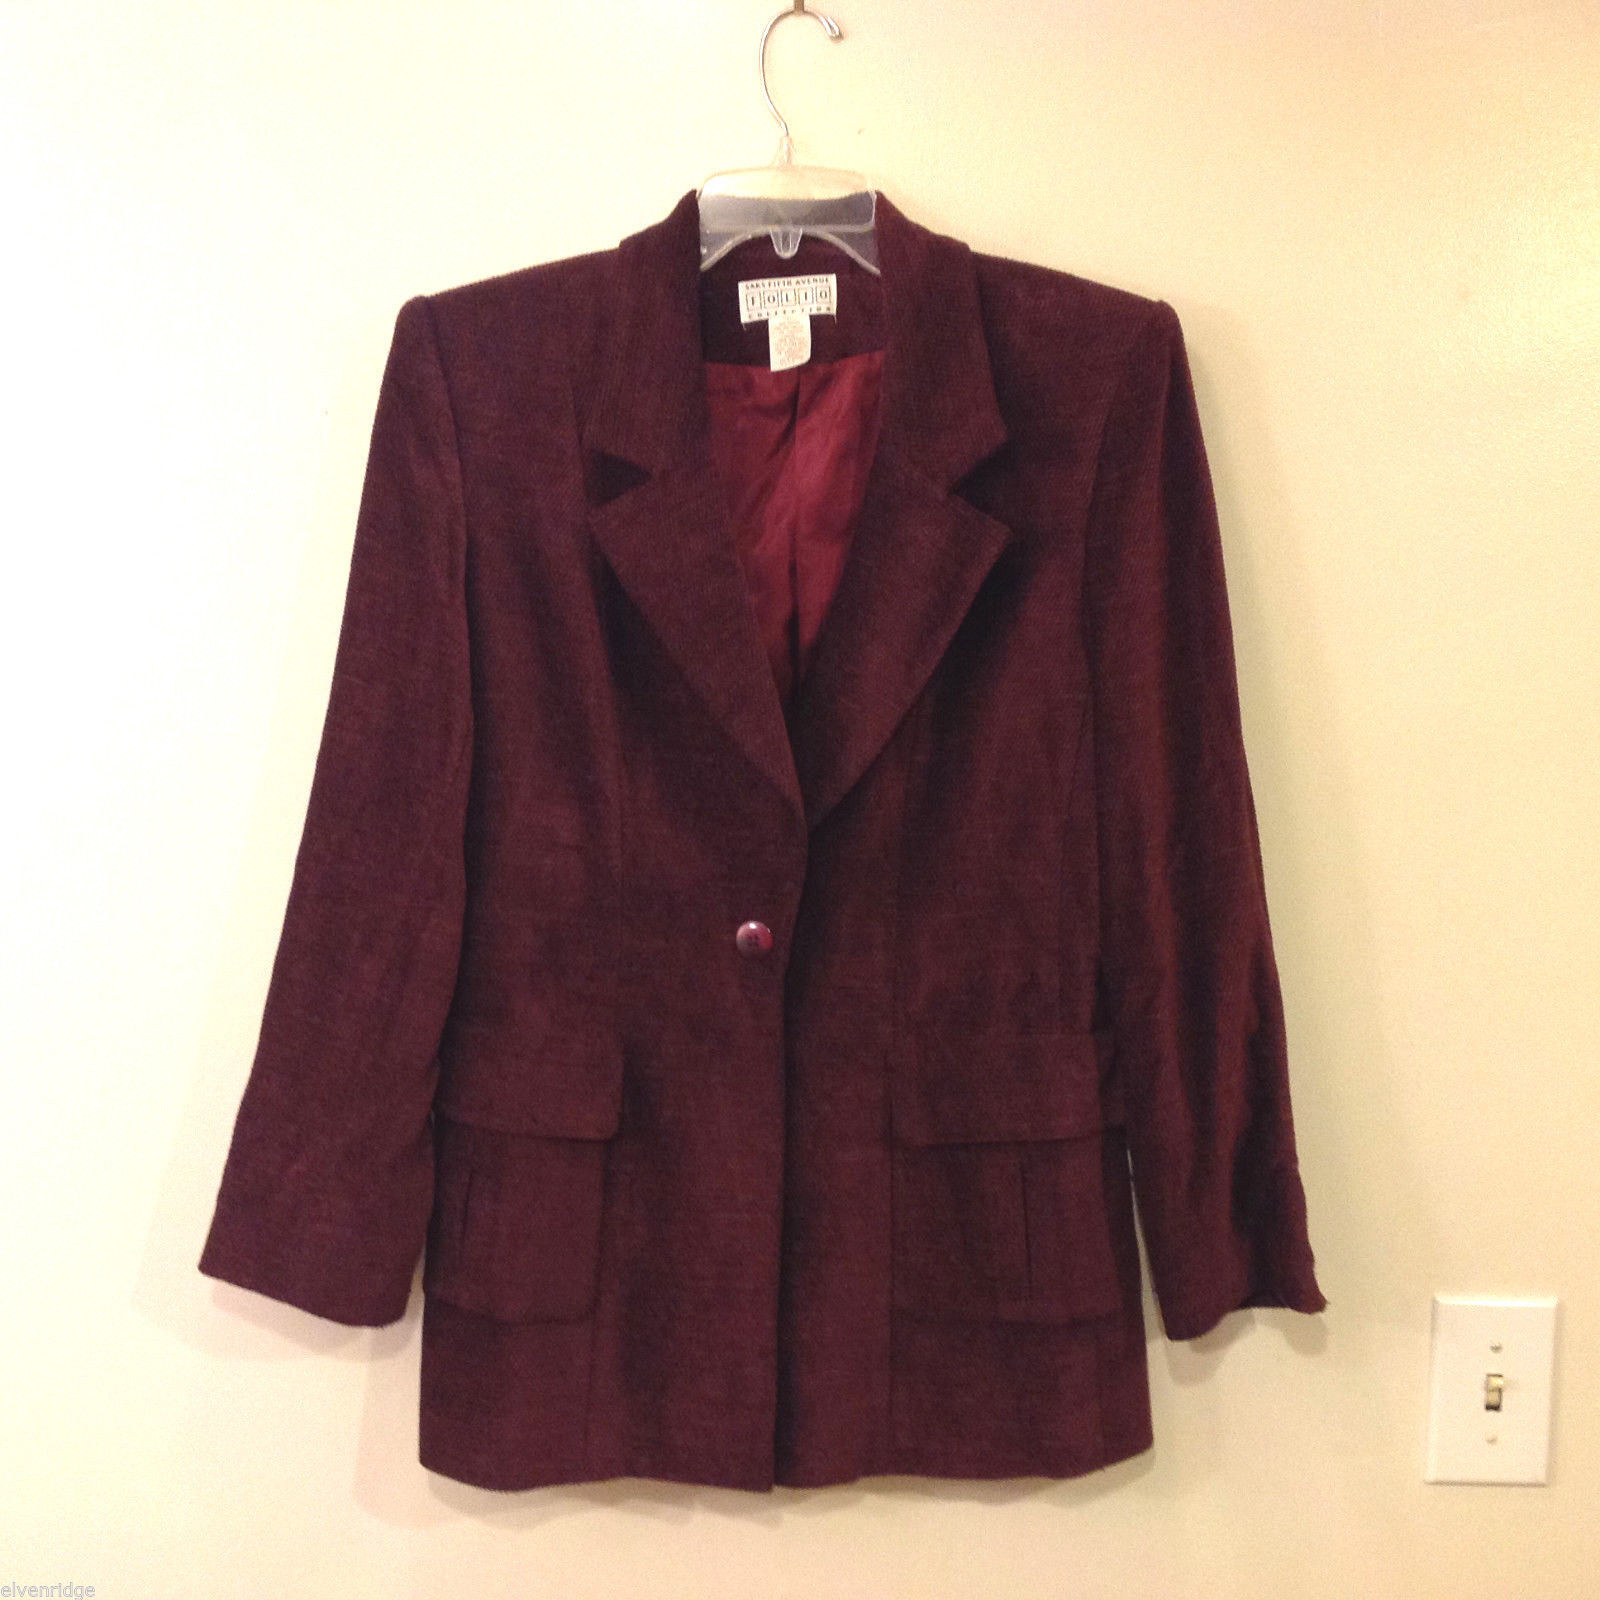 Saks Fifth Folio Women's Size 8 Blazer-Look Coat Burgundy Maroon Dark Purple Red